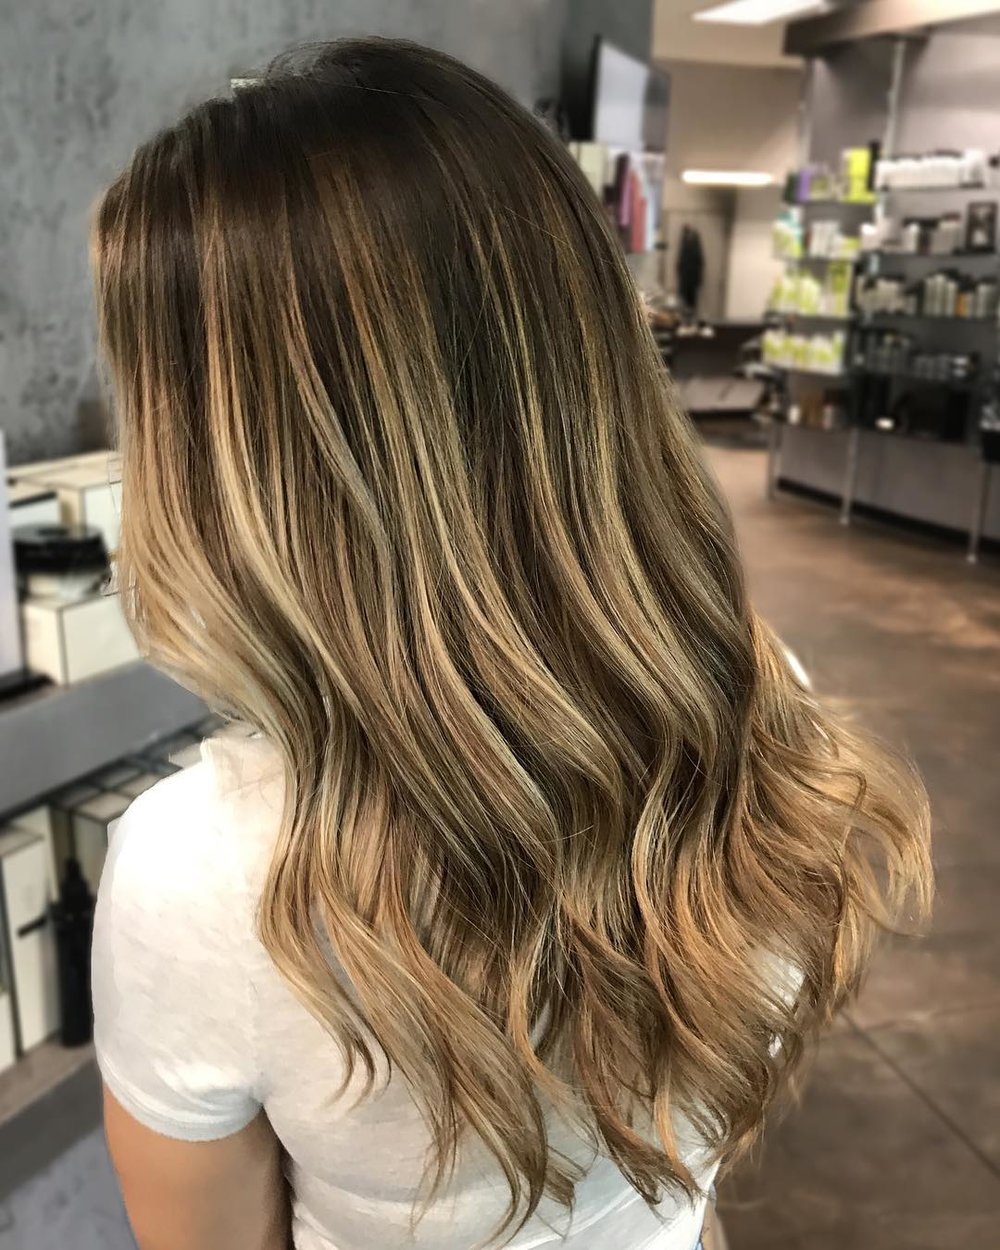 best-hair-styles-oklahoma-city (26).jpg